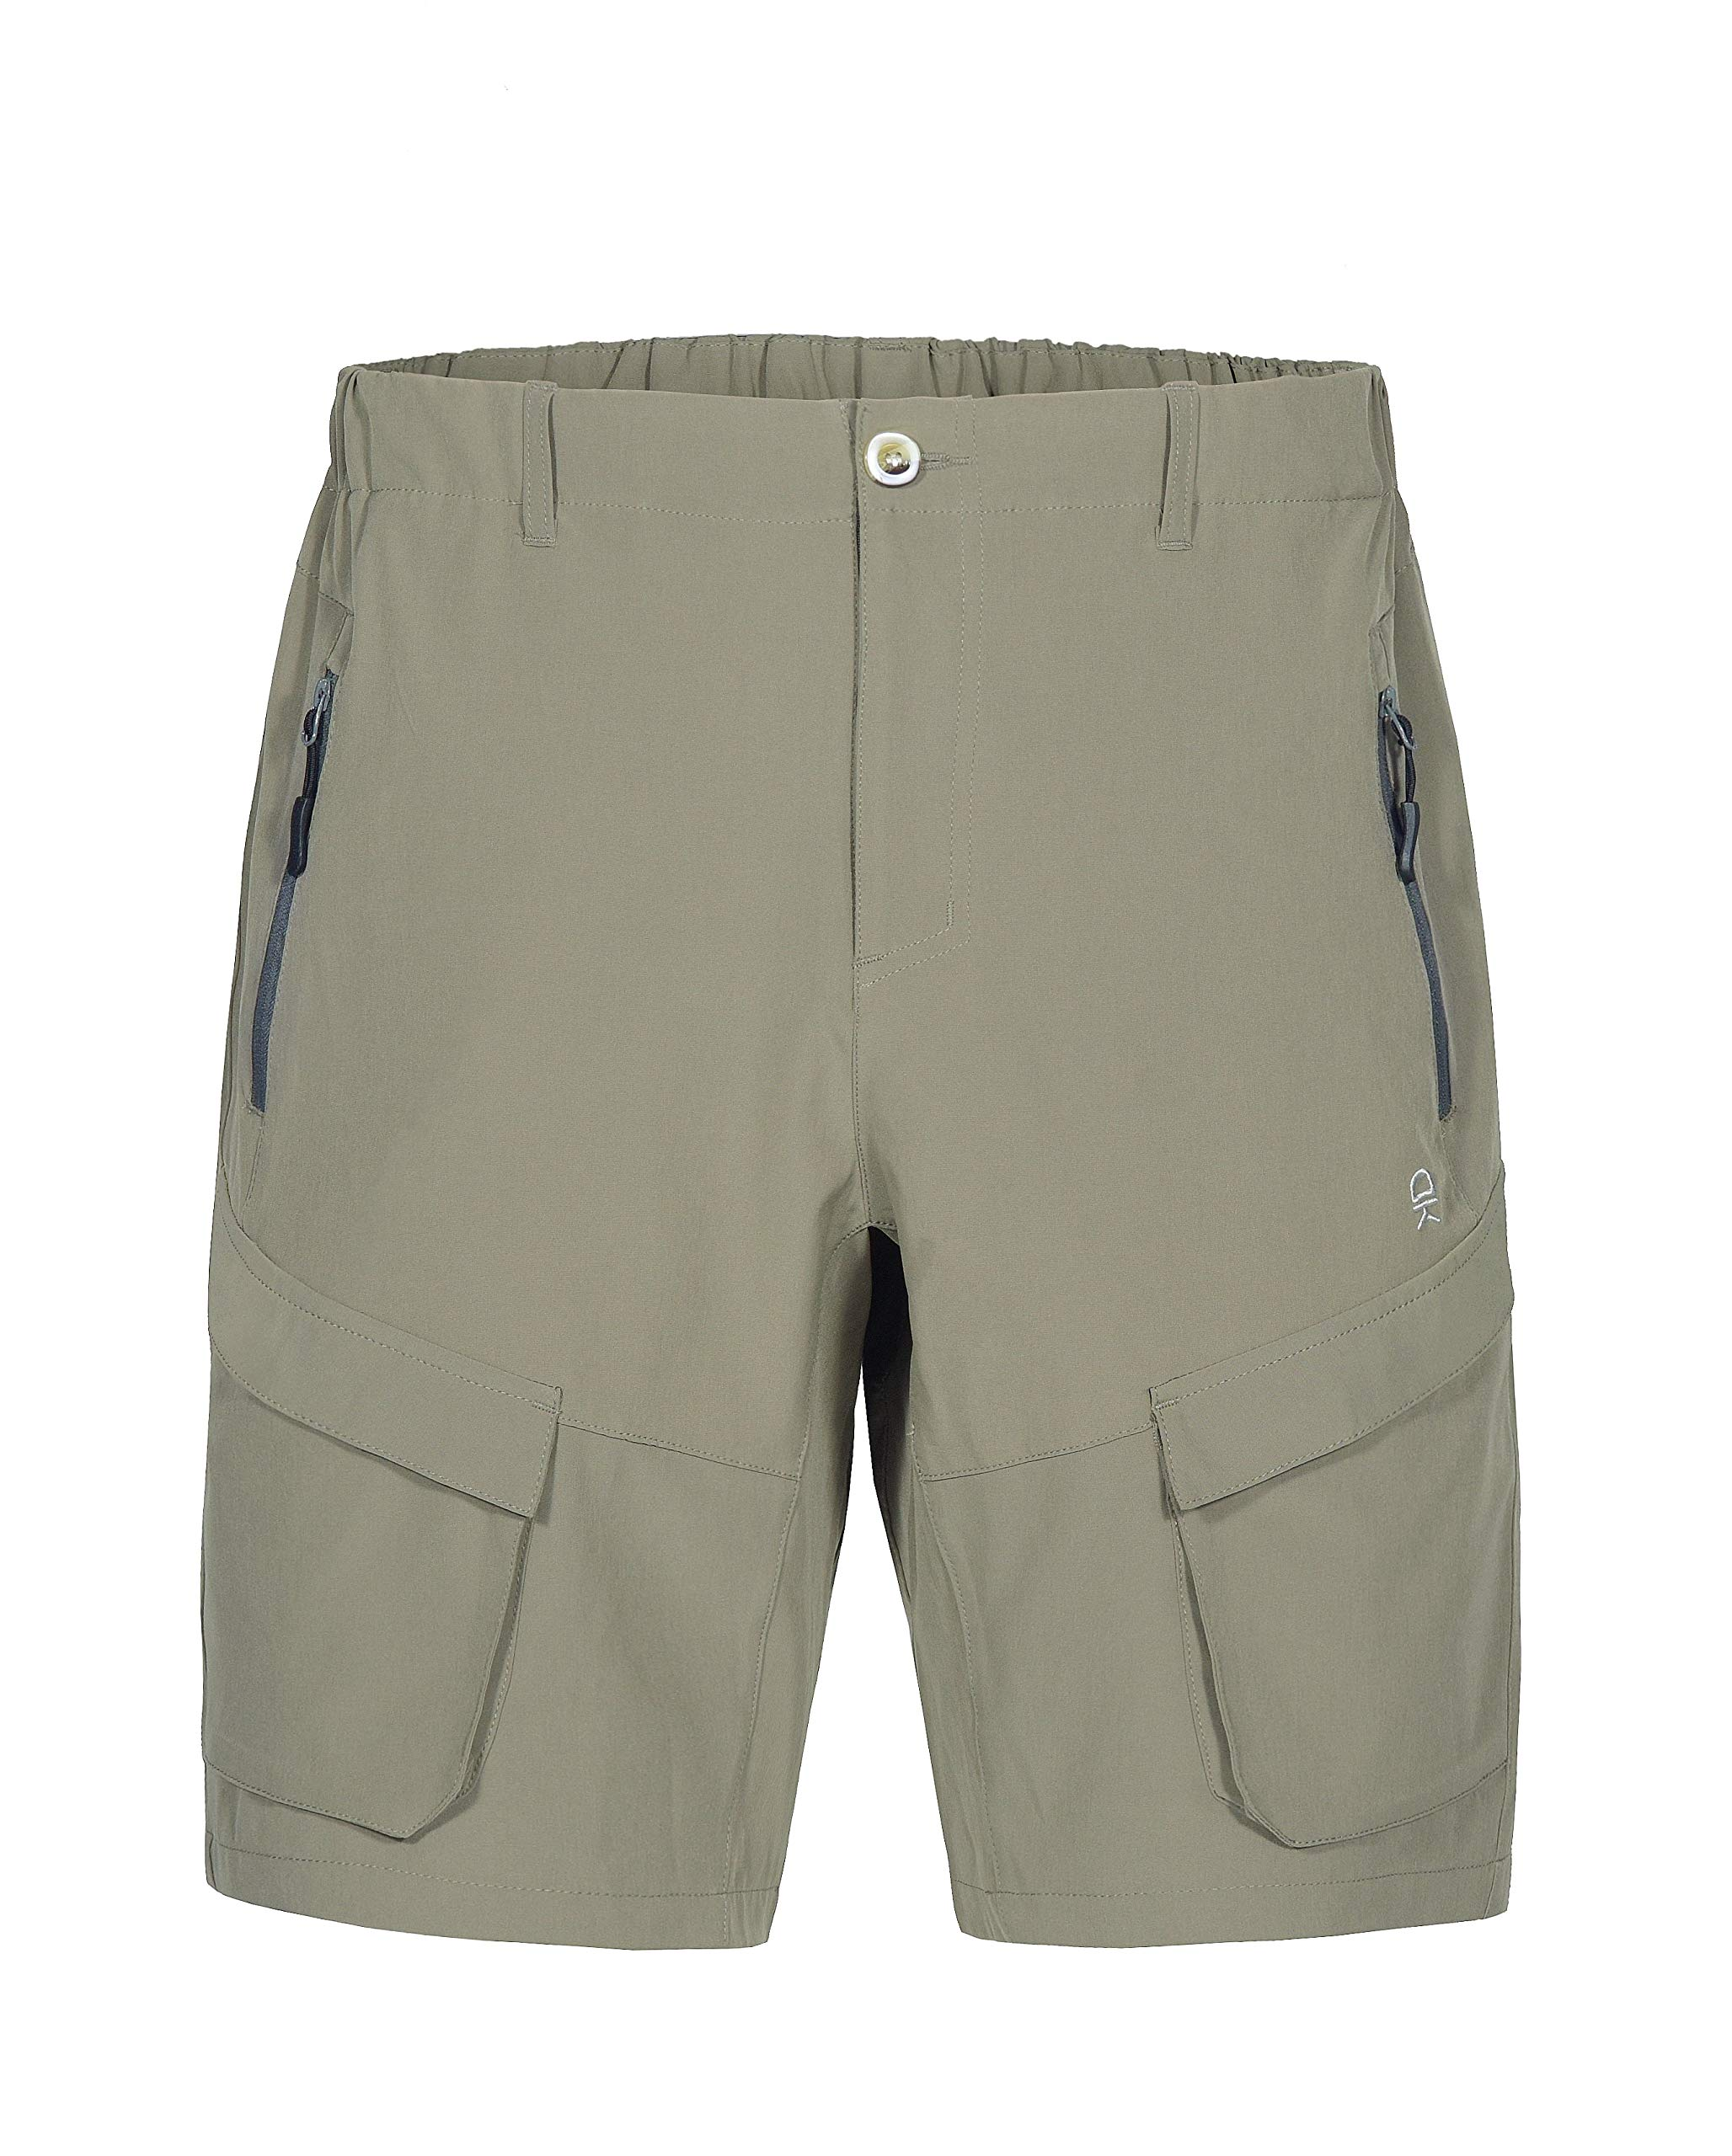 Little Donkey Andy Men's Stretch Quick Dry Cargo Shorts for Hiking, Camping, Travel Sage Size L by Little Donkey Andy